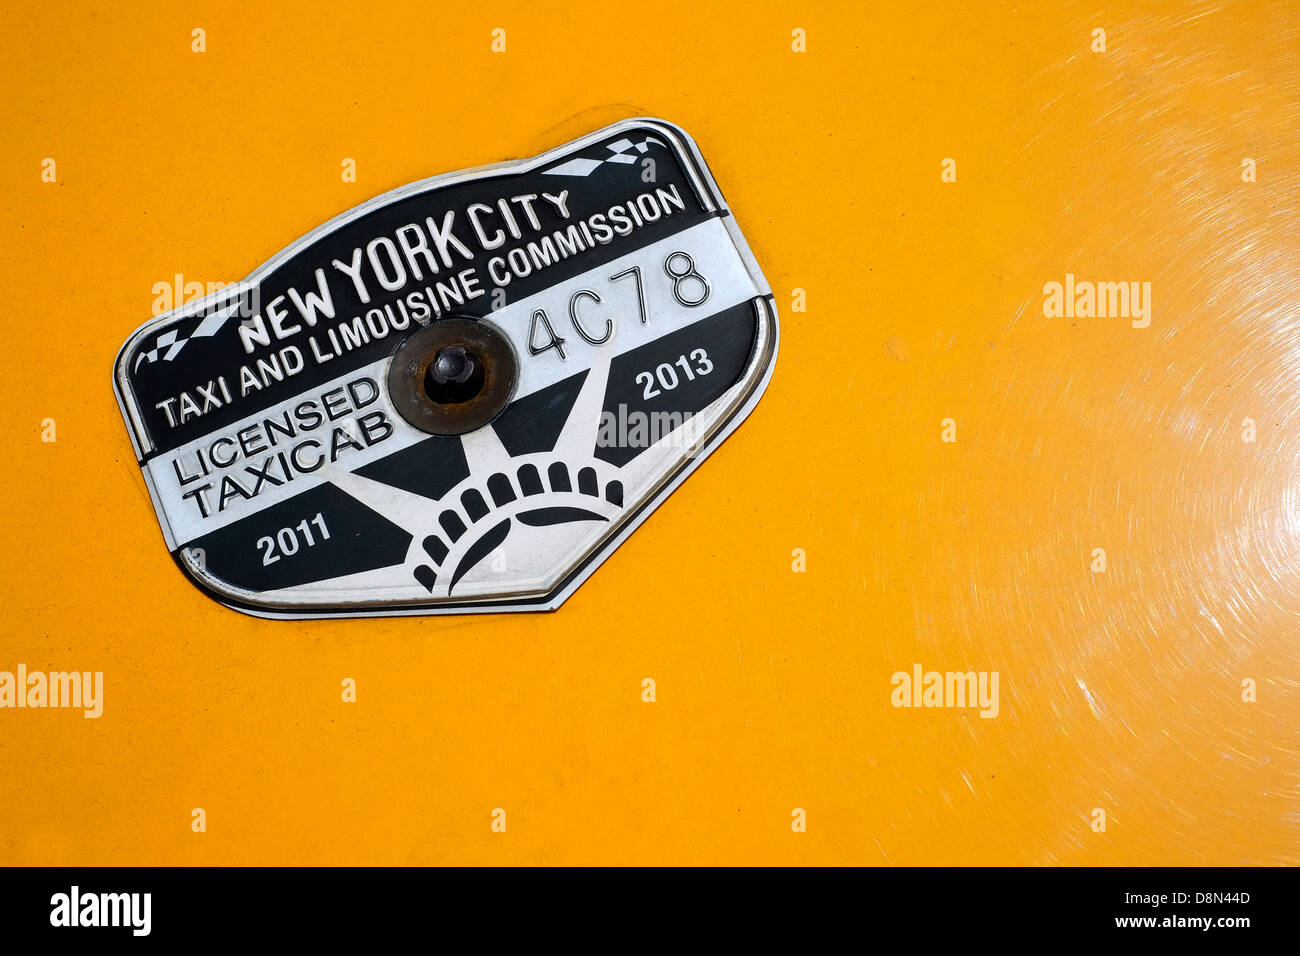 New York City Taxi & Limousine Commission badge on the hood of an NYC taxi. - Stock Image